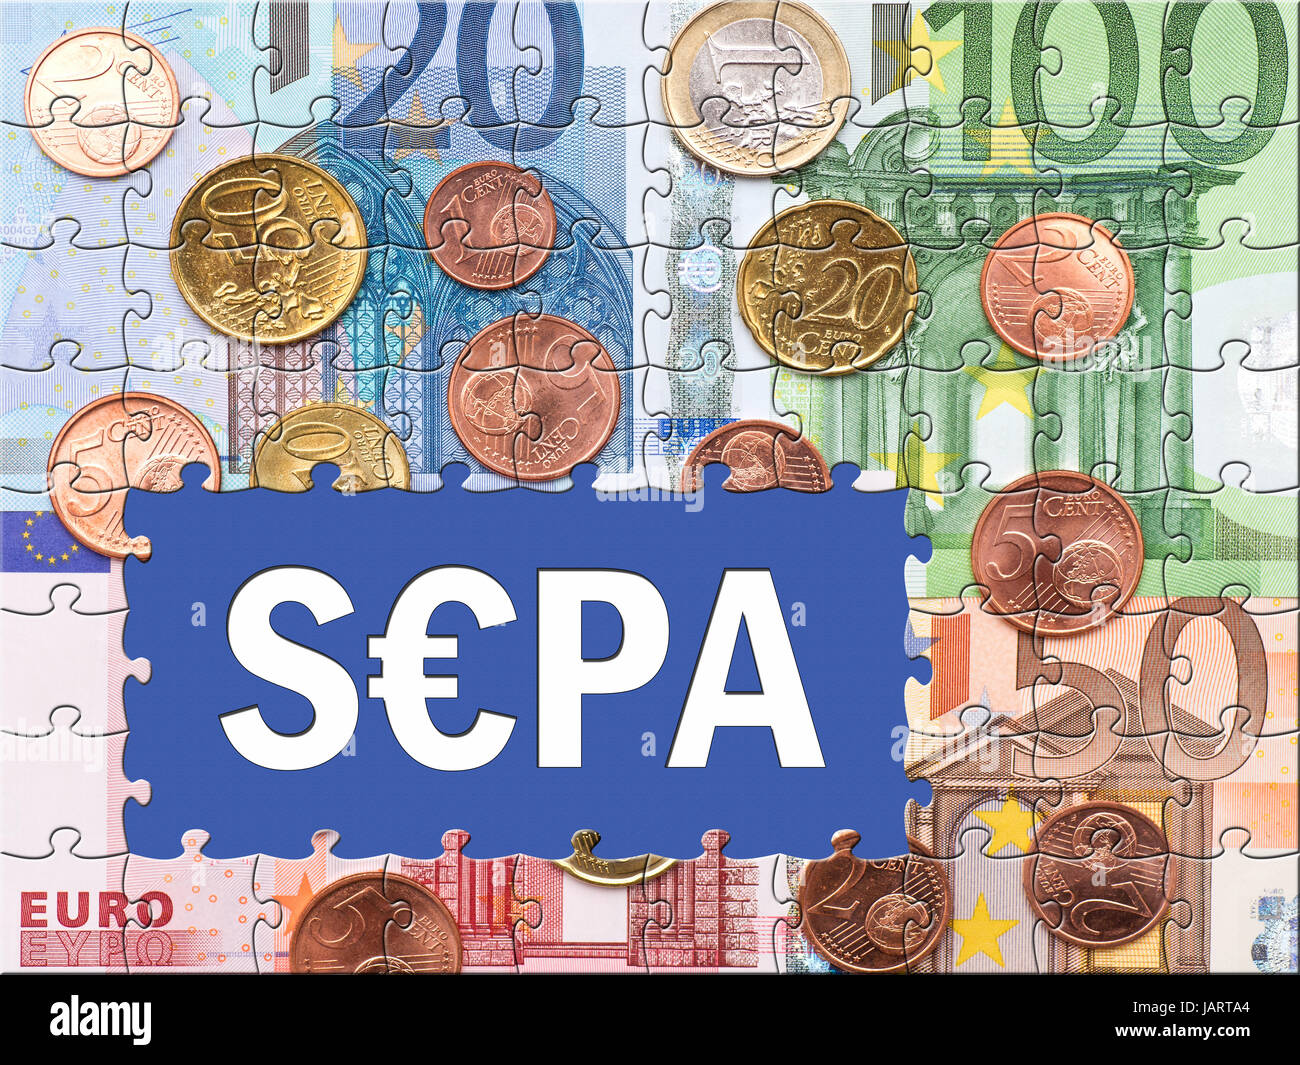 Sepa Money Transfer With Iban And Bic Stock Photos & Sepa Money